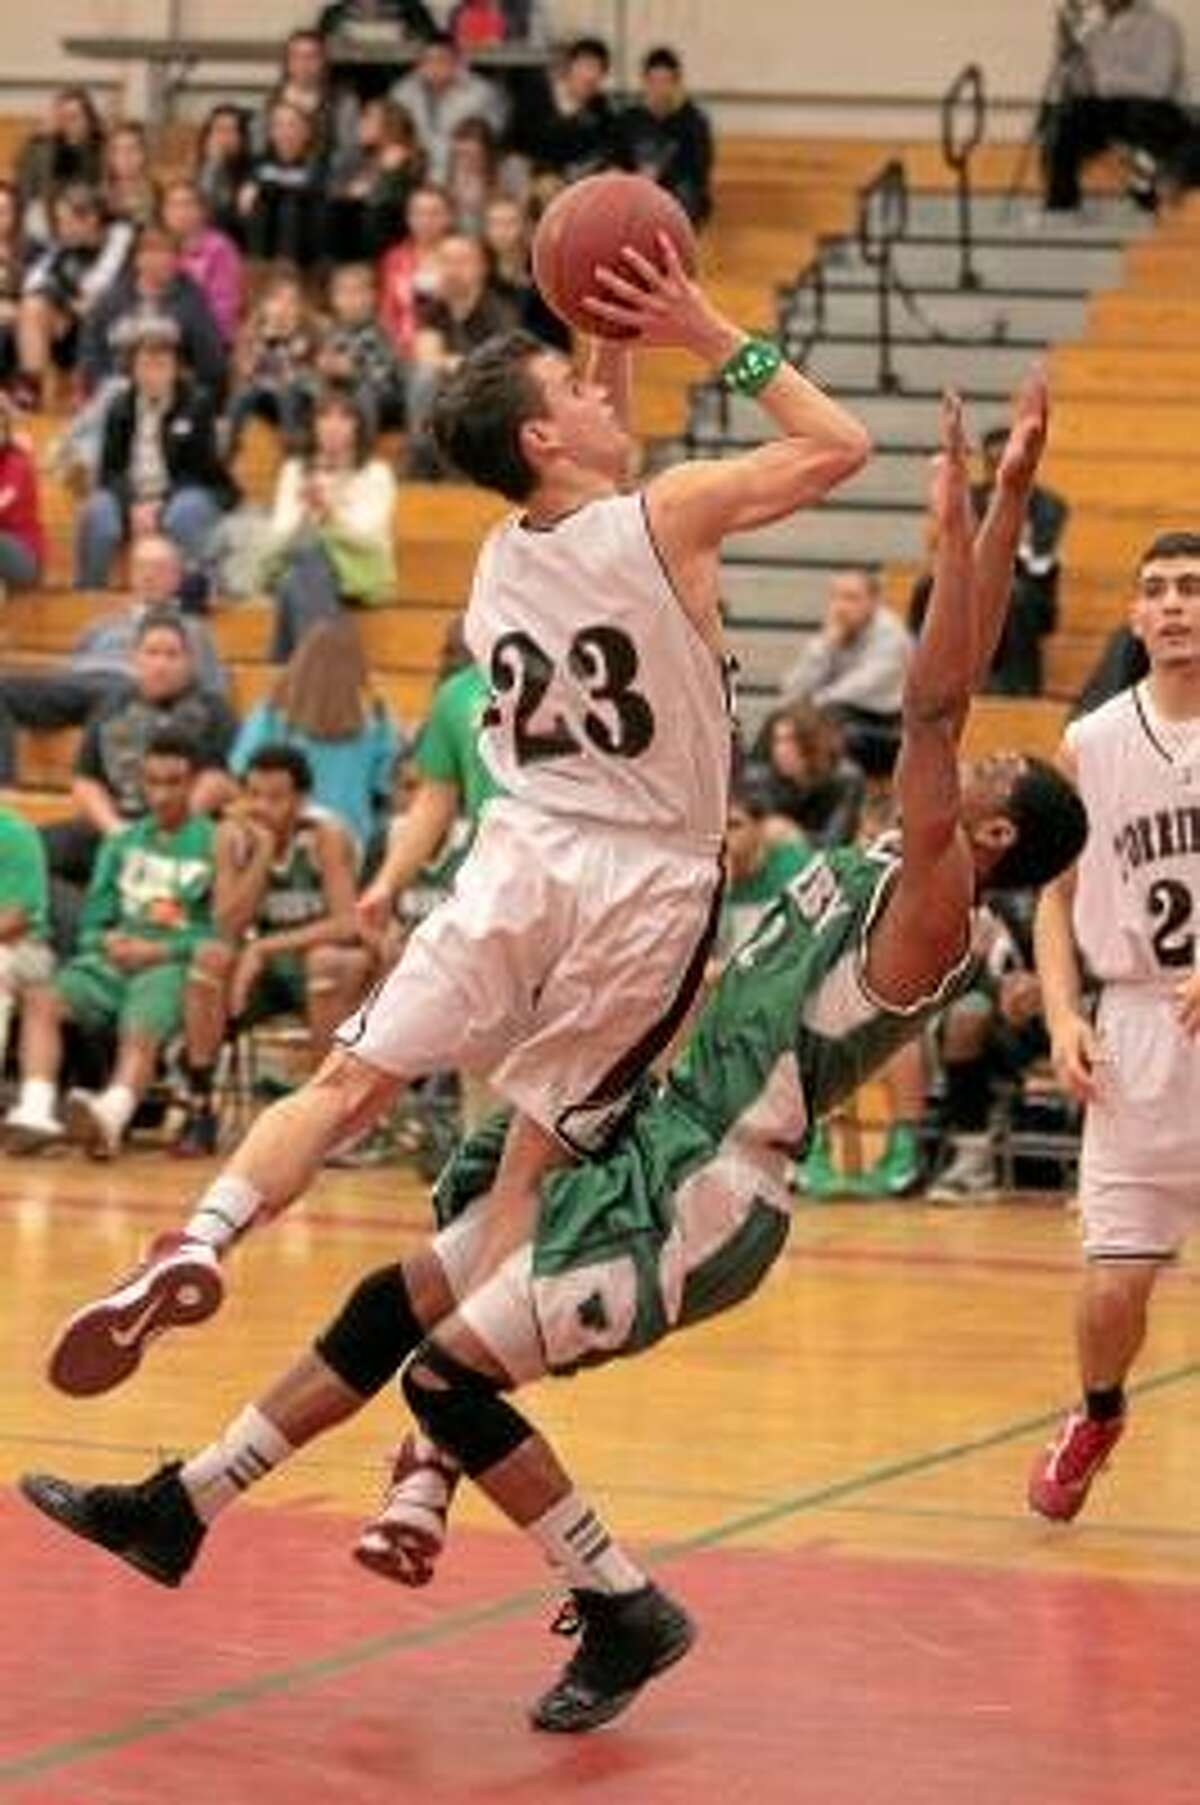 Torrington's Austin Kelson (23) collides with a Wilby defender as he goes for a layup. Marianne Killackey/Special to Register Citizen.